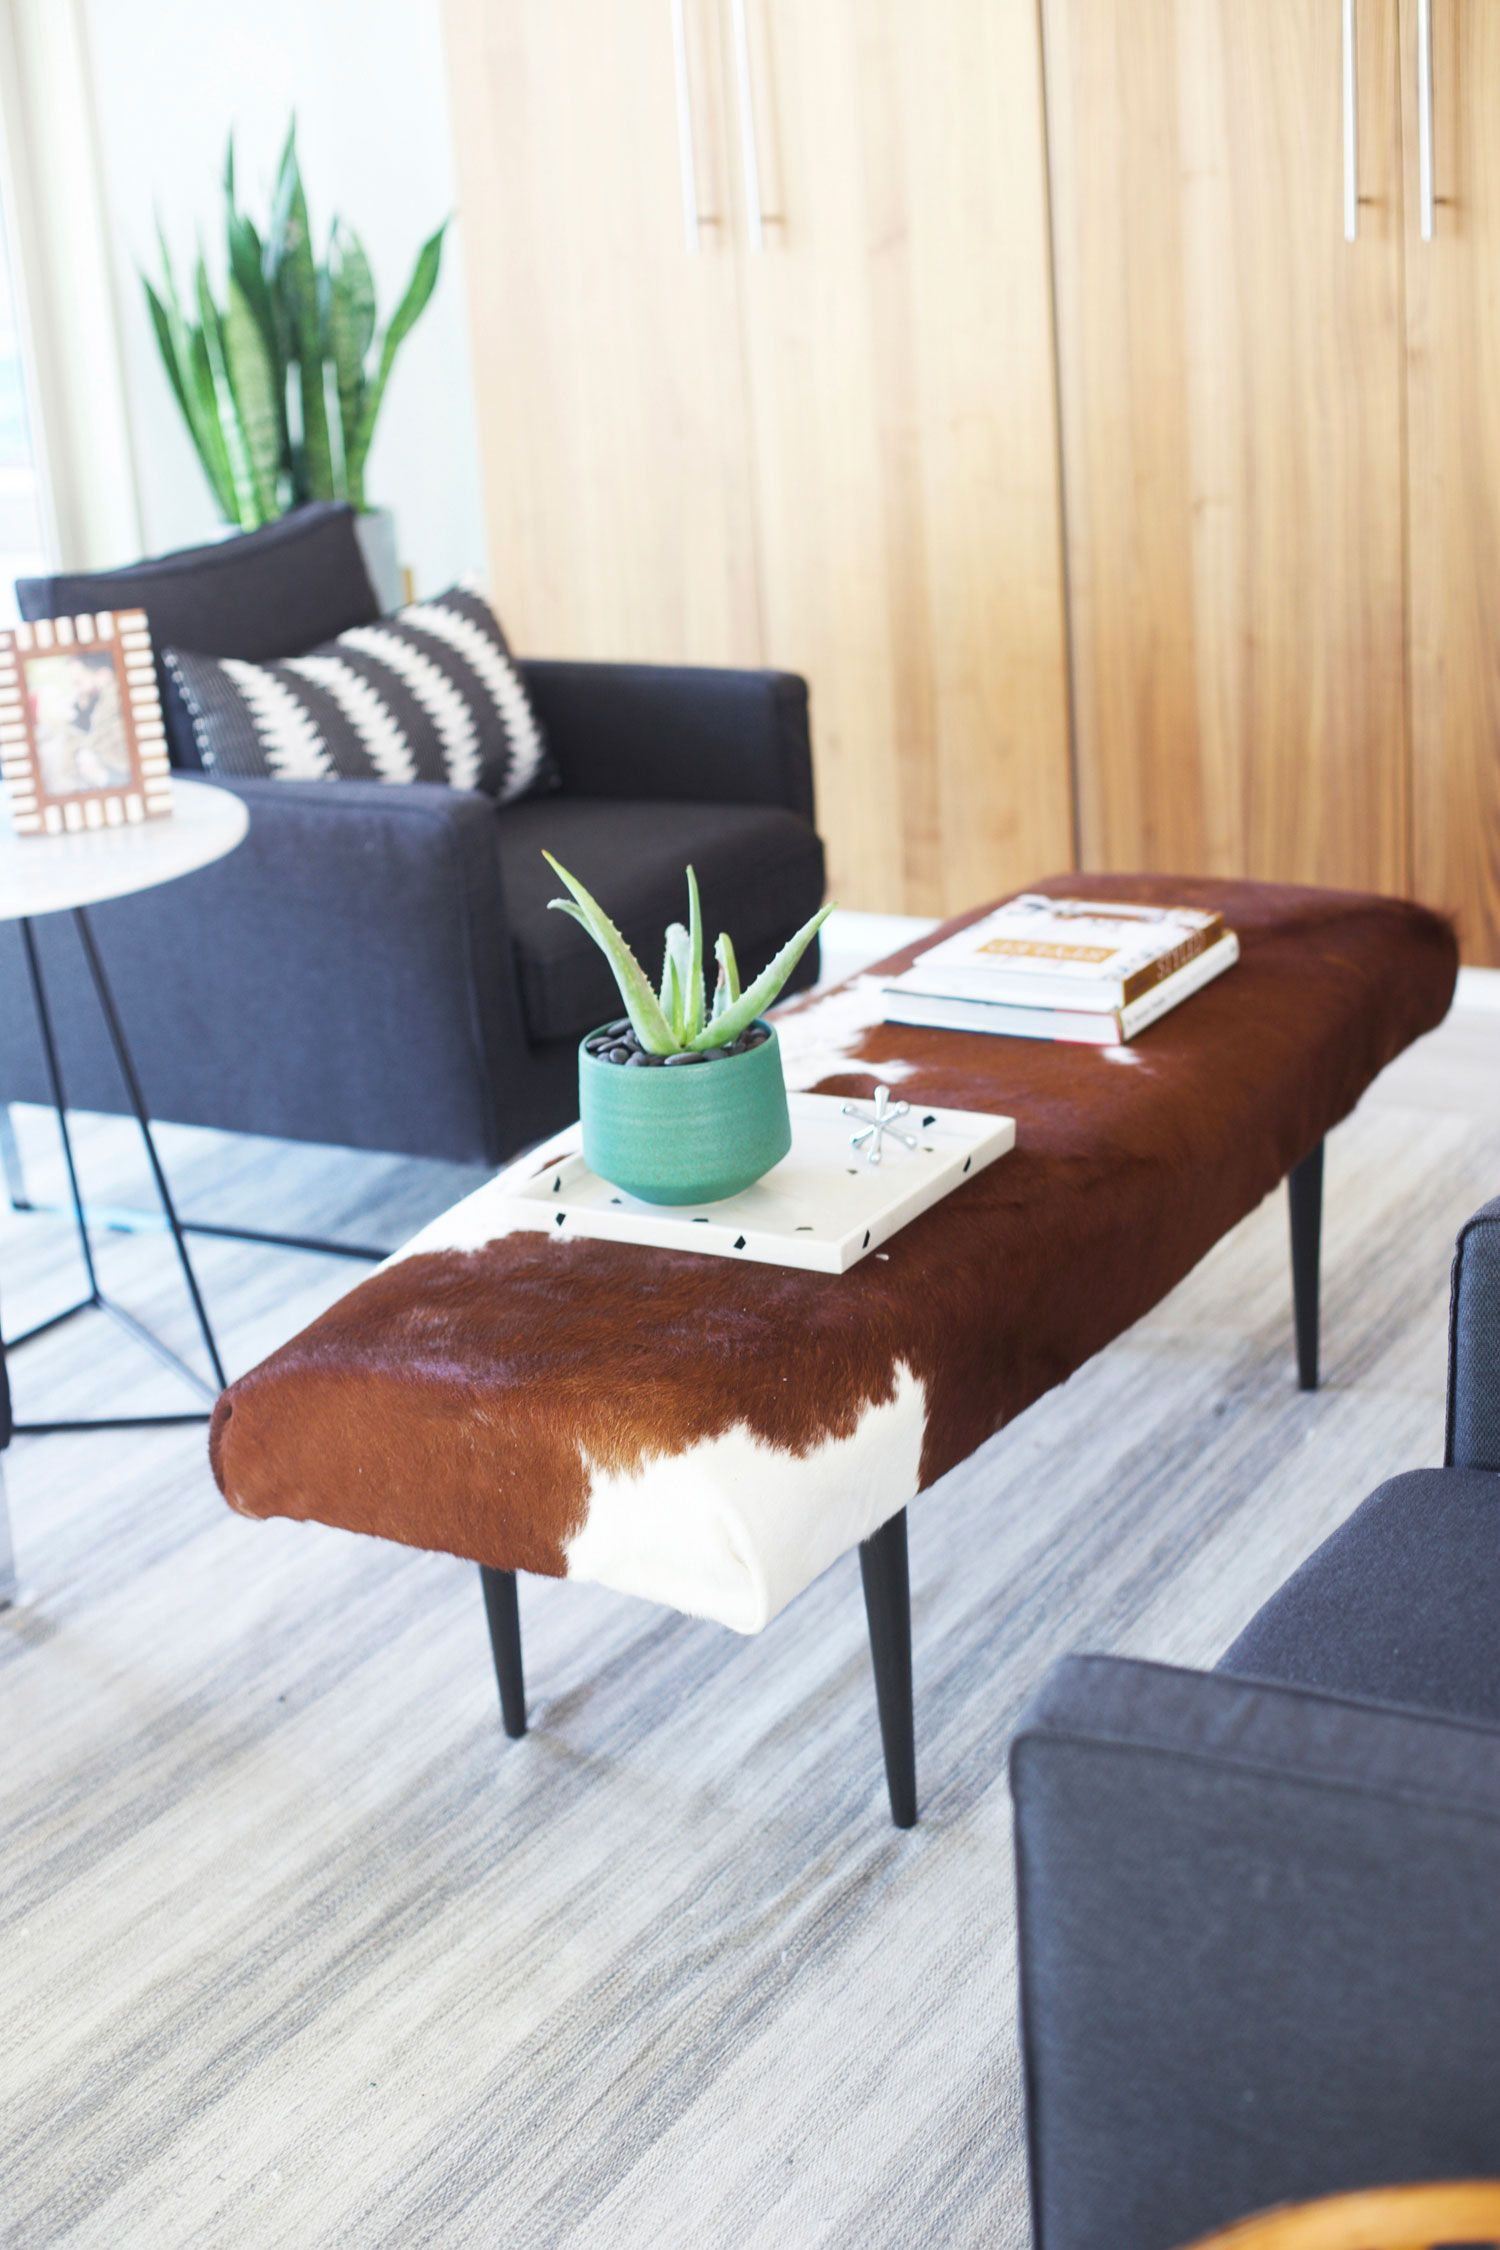 Ikea Cowhide Rug Apr 10 Ikea Hack Cowhide Ottoman Diy Ikea Rug Ikea Table Hack